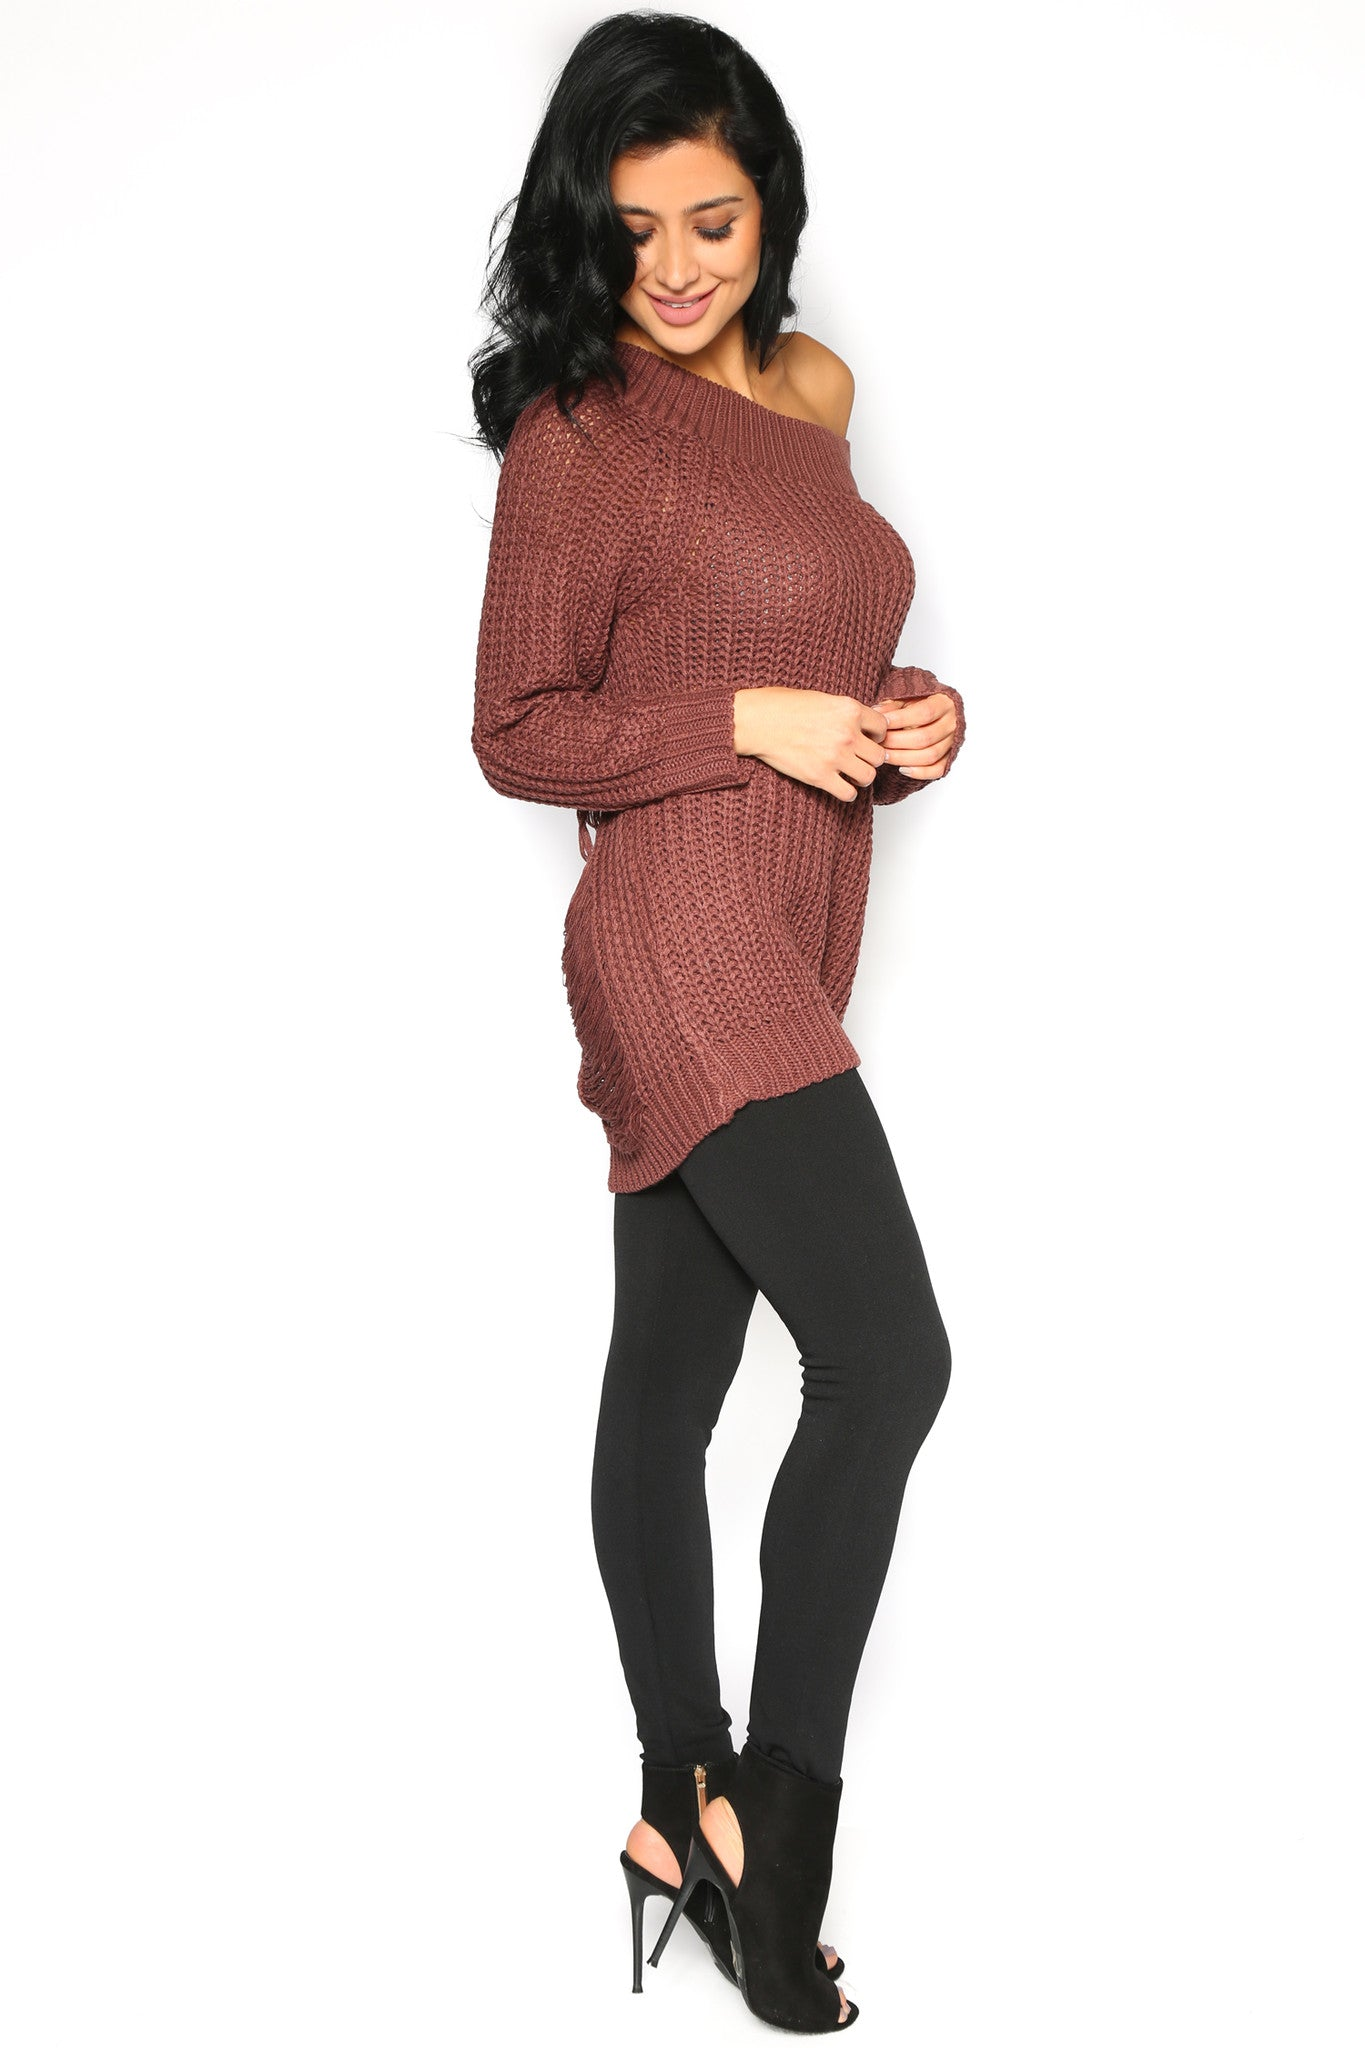 VICTORIA SWEATER - Glam Envy - 2